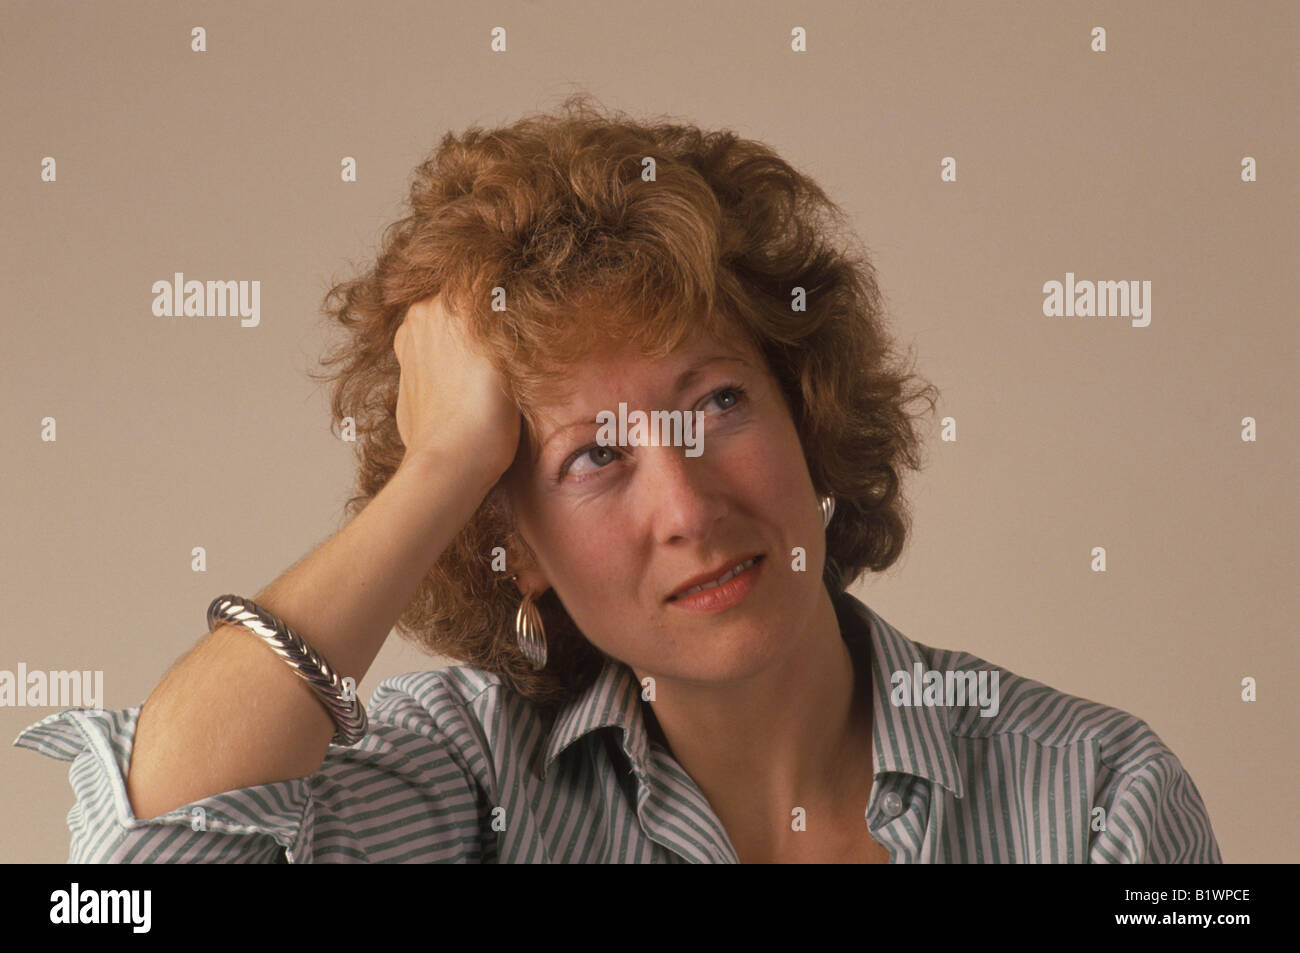 stressed woman holding her head - Stock Image